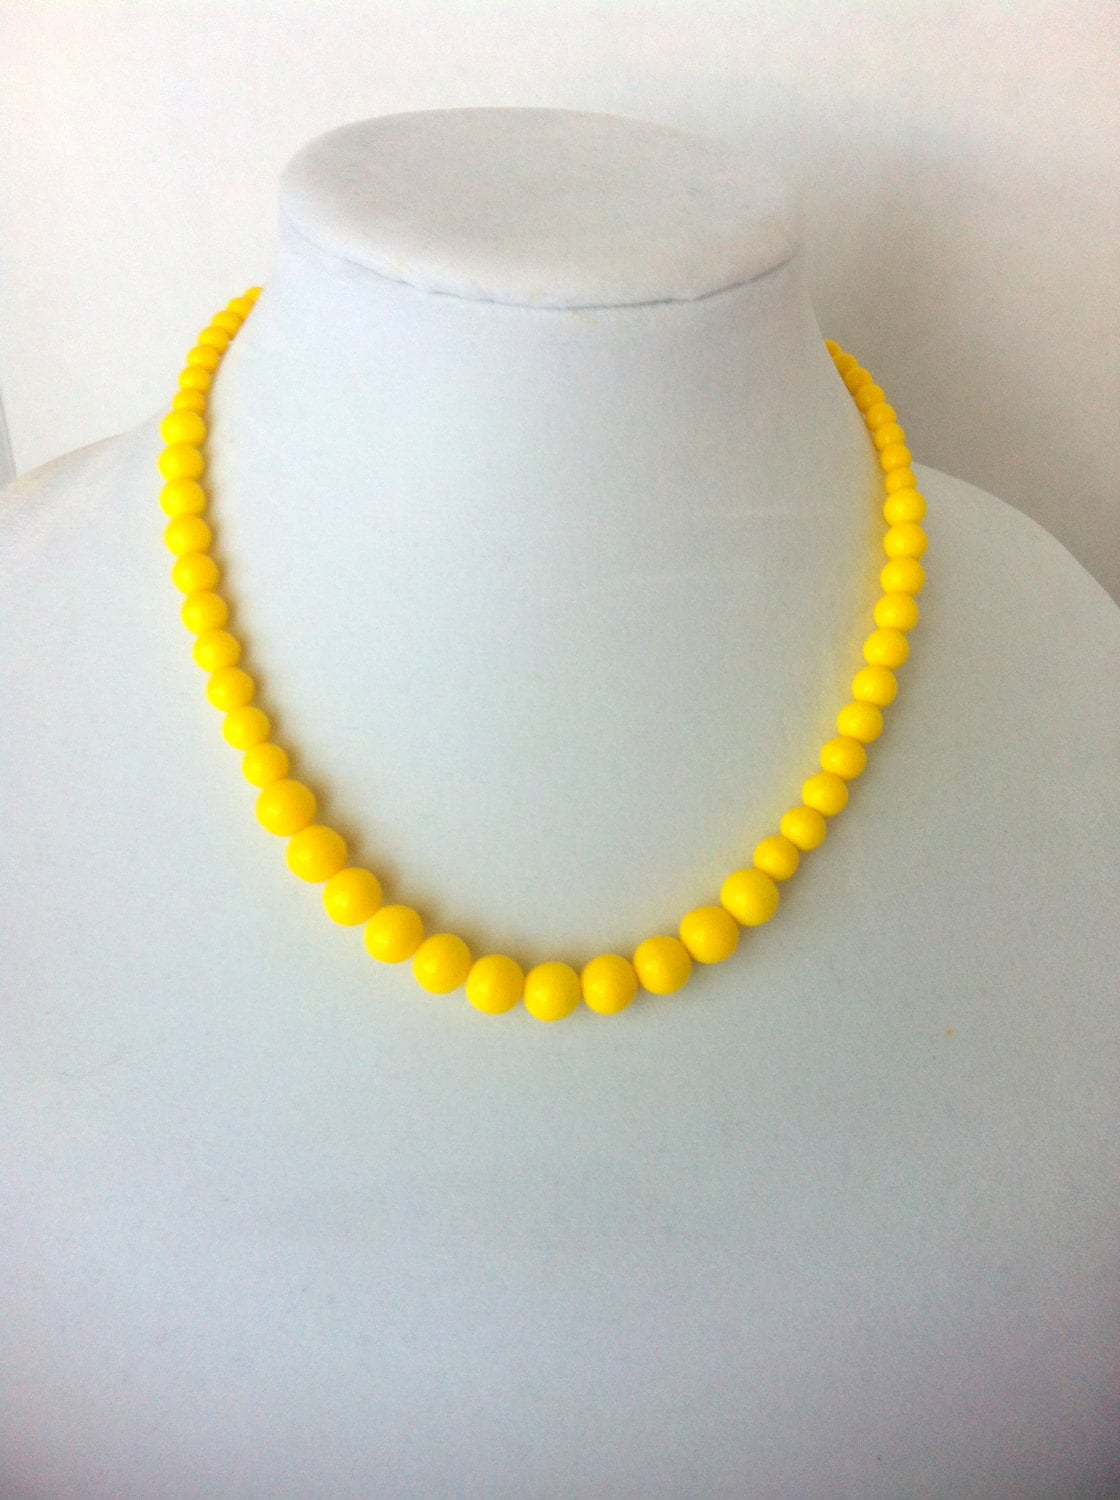 Yellow Necklace, Graduated Bead Yellow Necklace, 18 inch Necklace - DivaliciousJewels